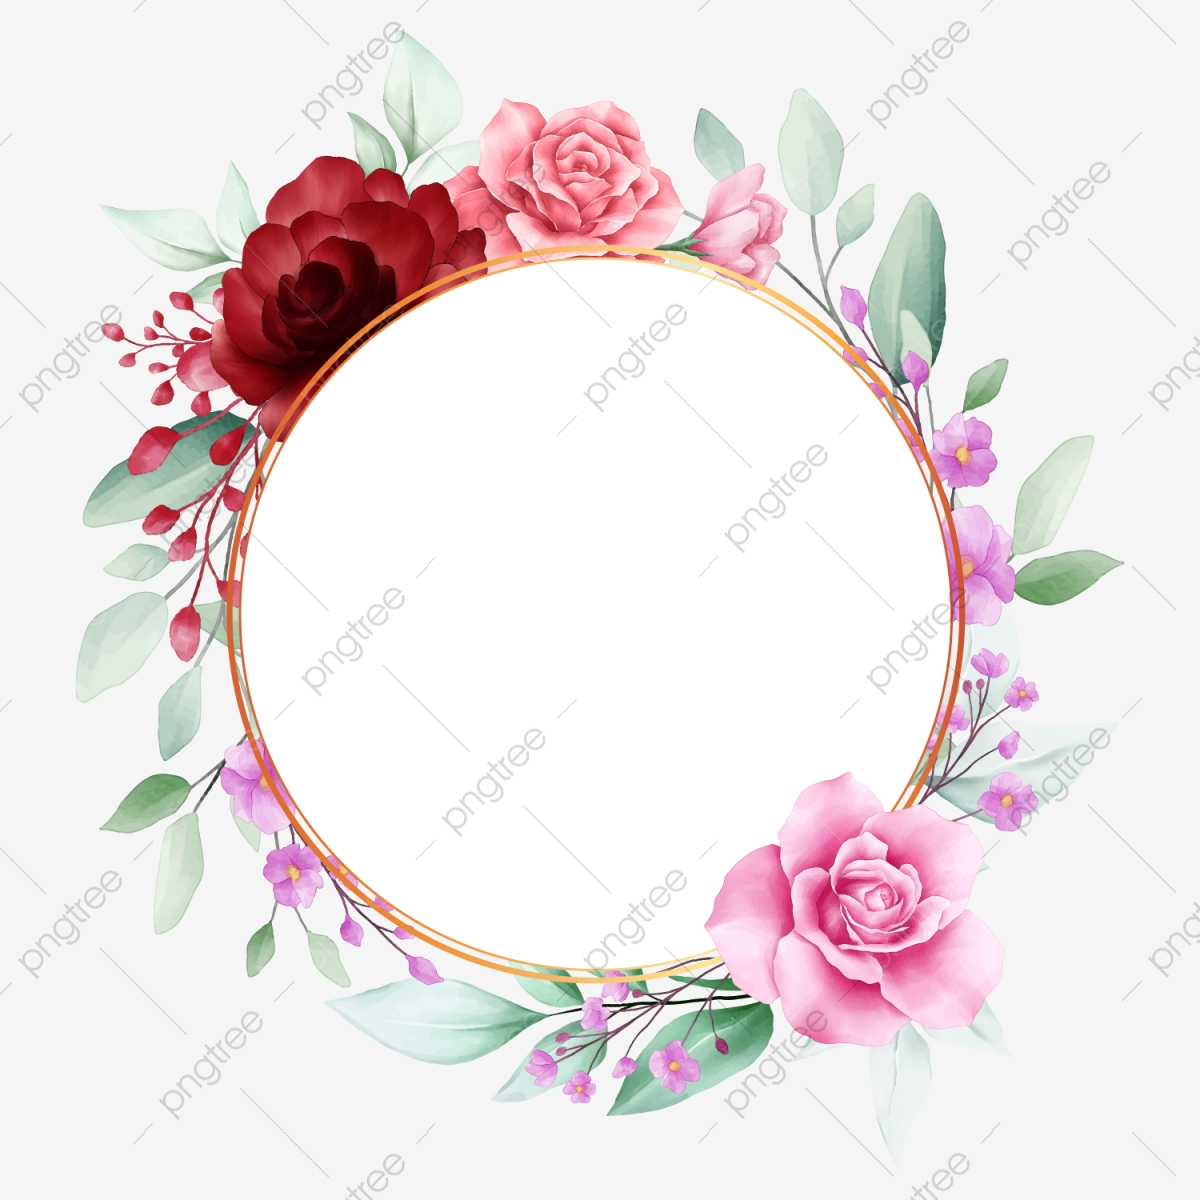 Elegant Circle Floral Frame With Watercolor Peonies Flowers